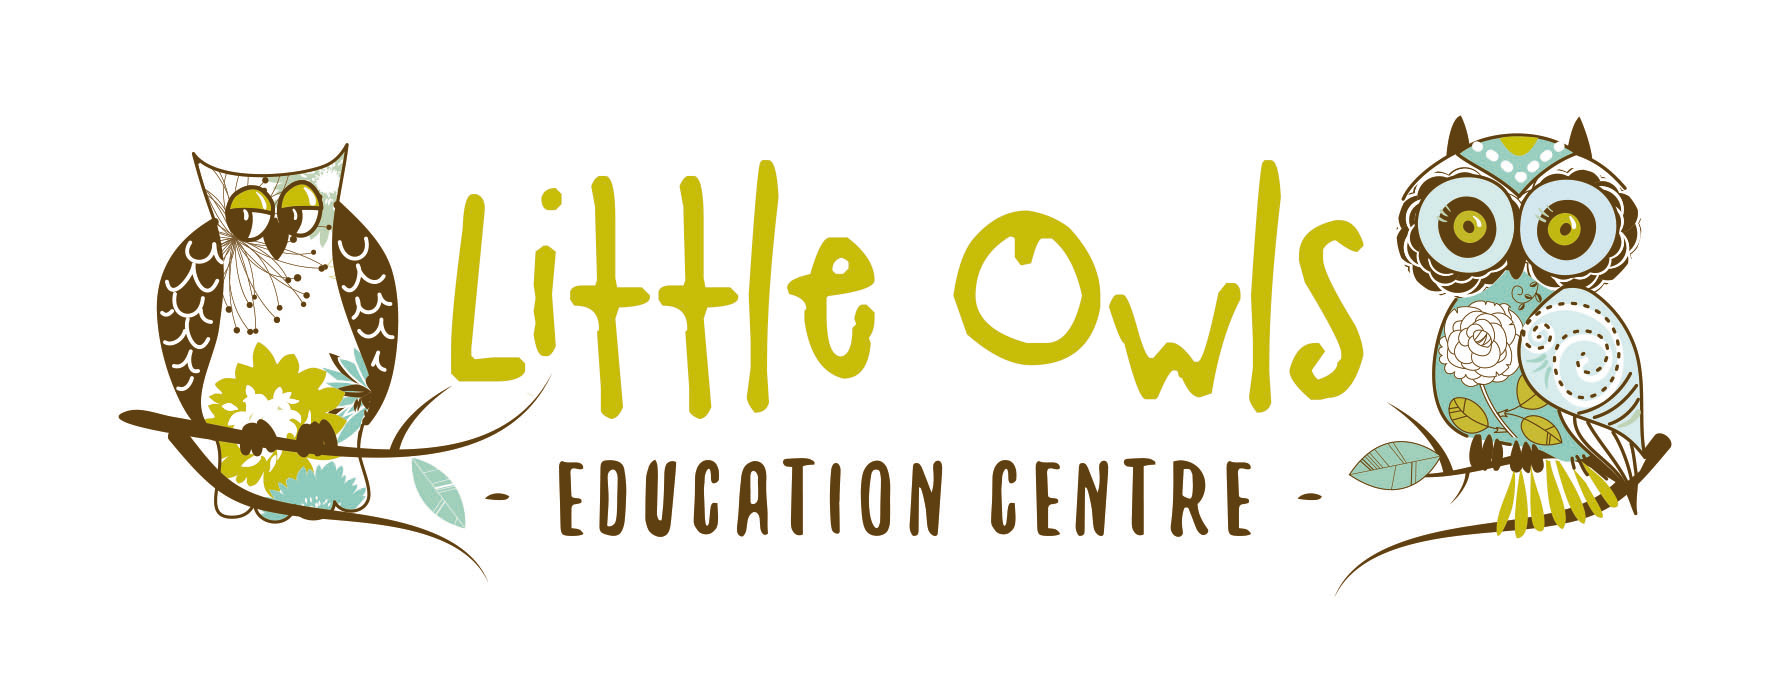 Little Owls Education - logo design